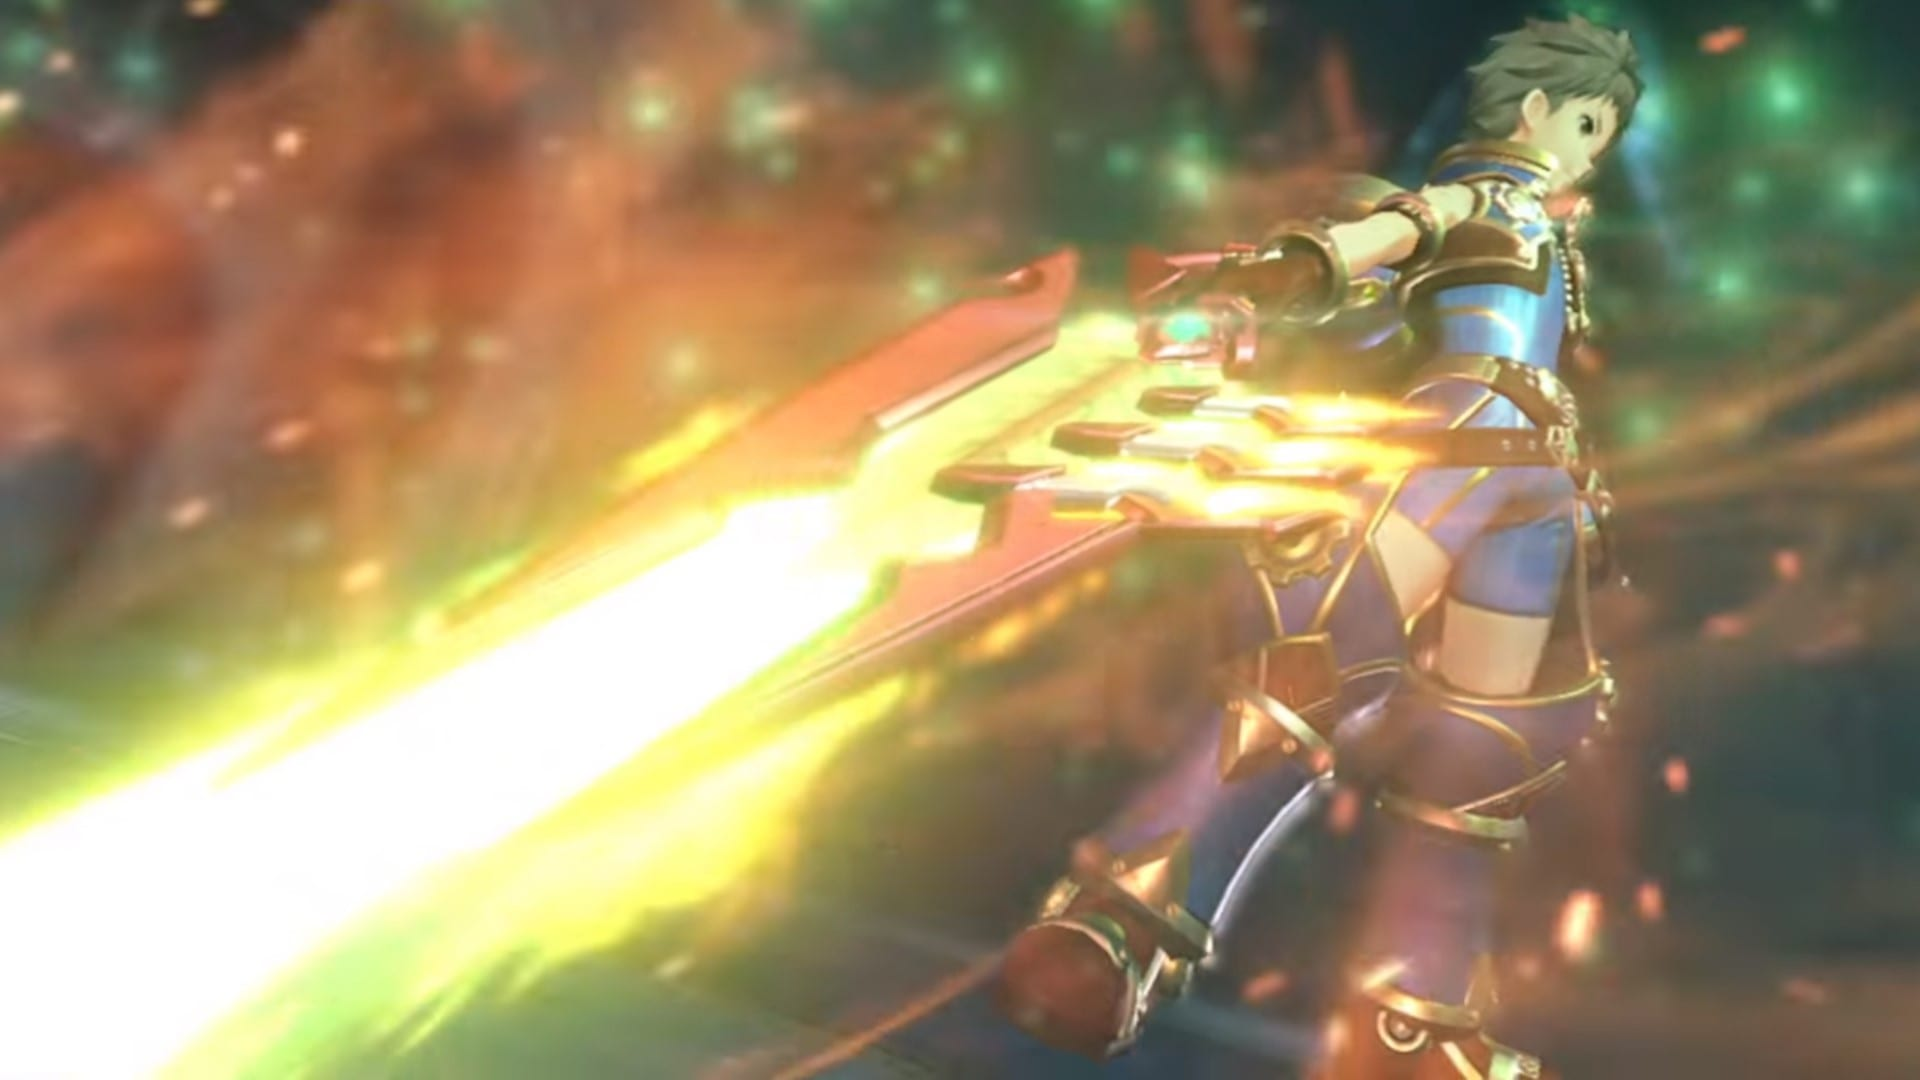 Xenoblade Chronicles 2 Confirmed for 2017 Release - GameLuster